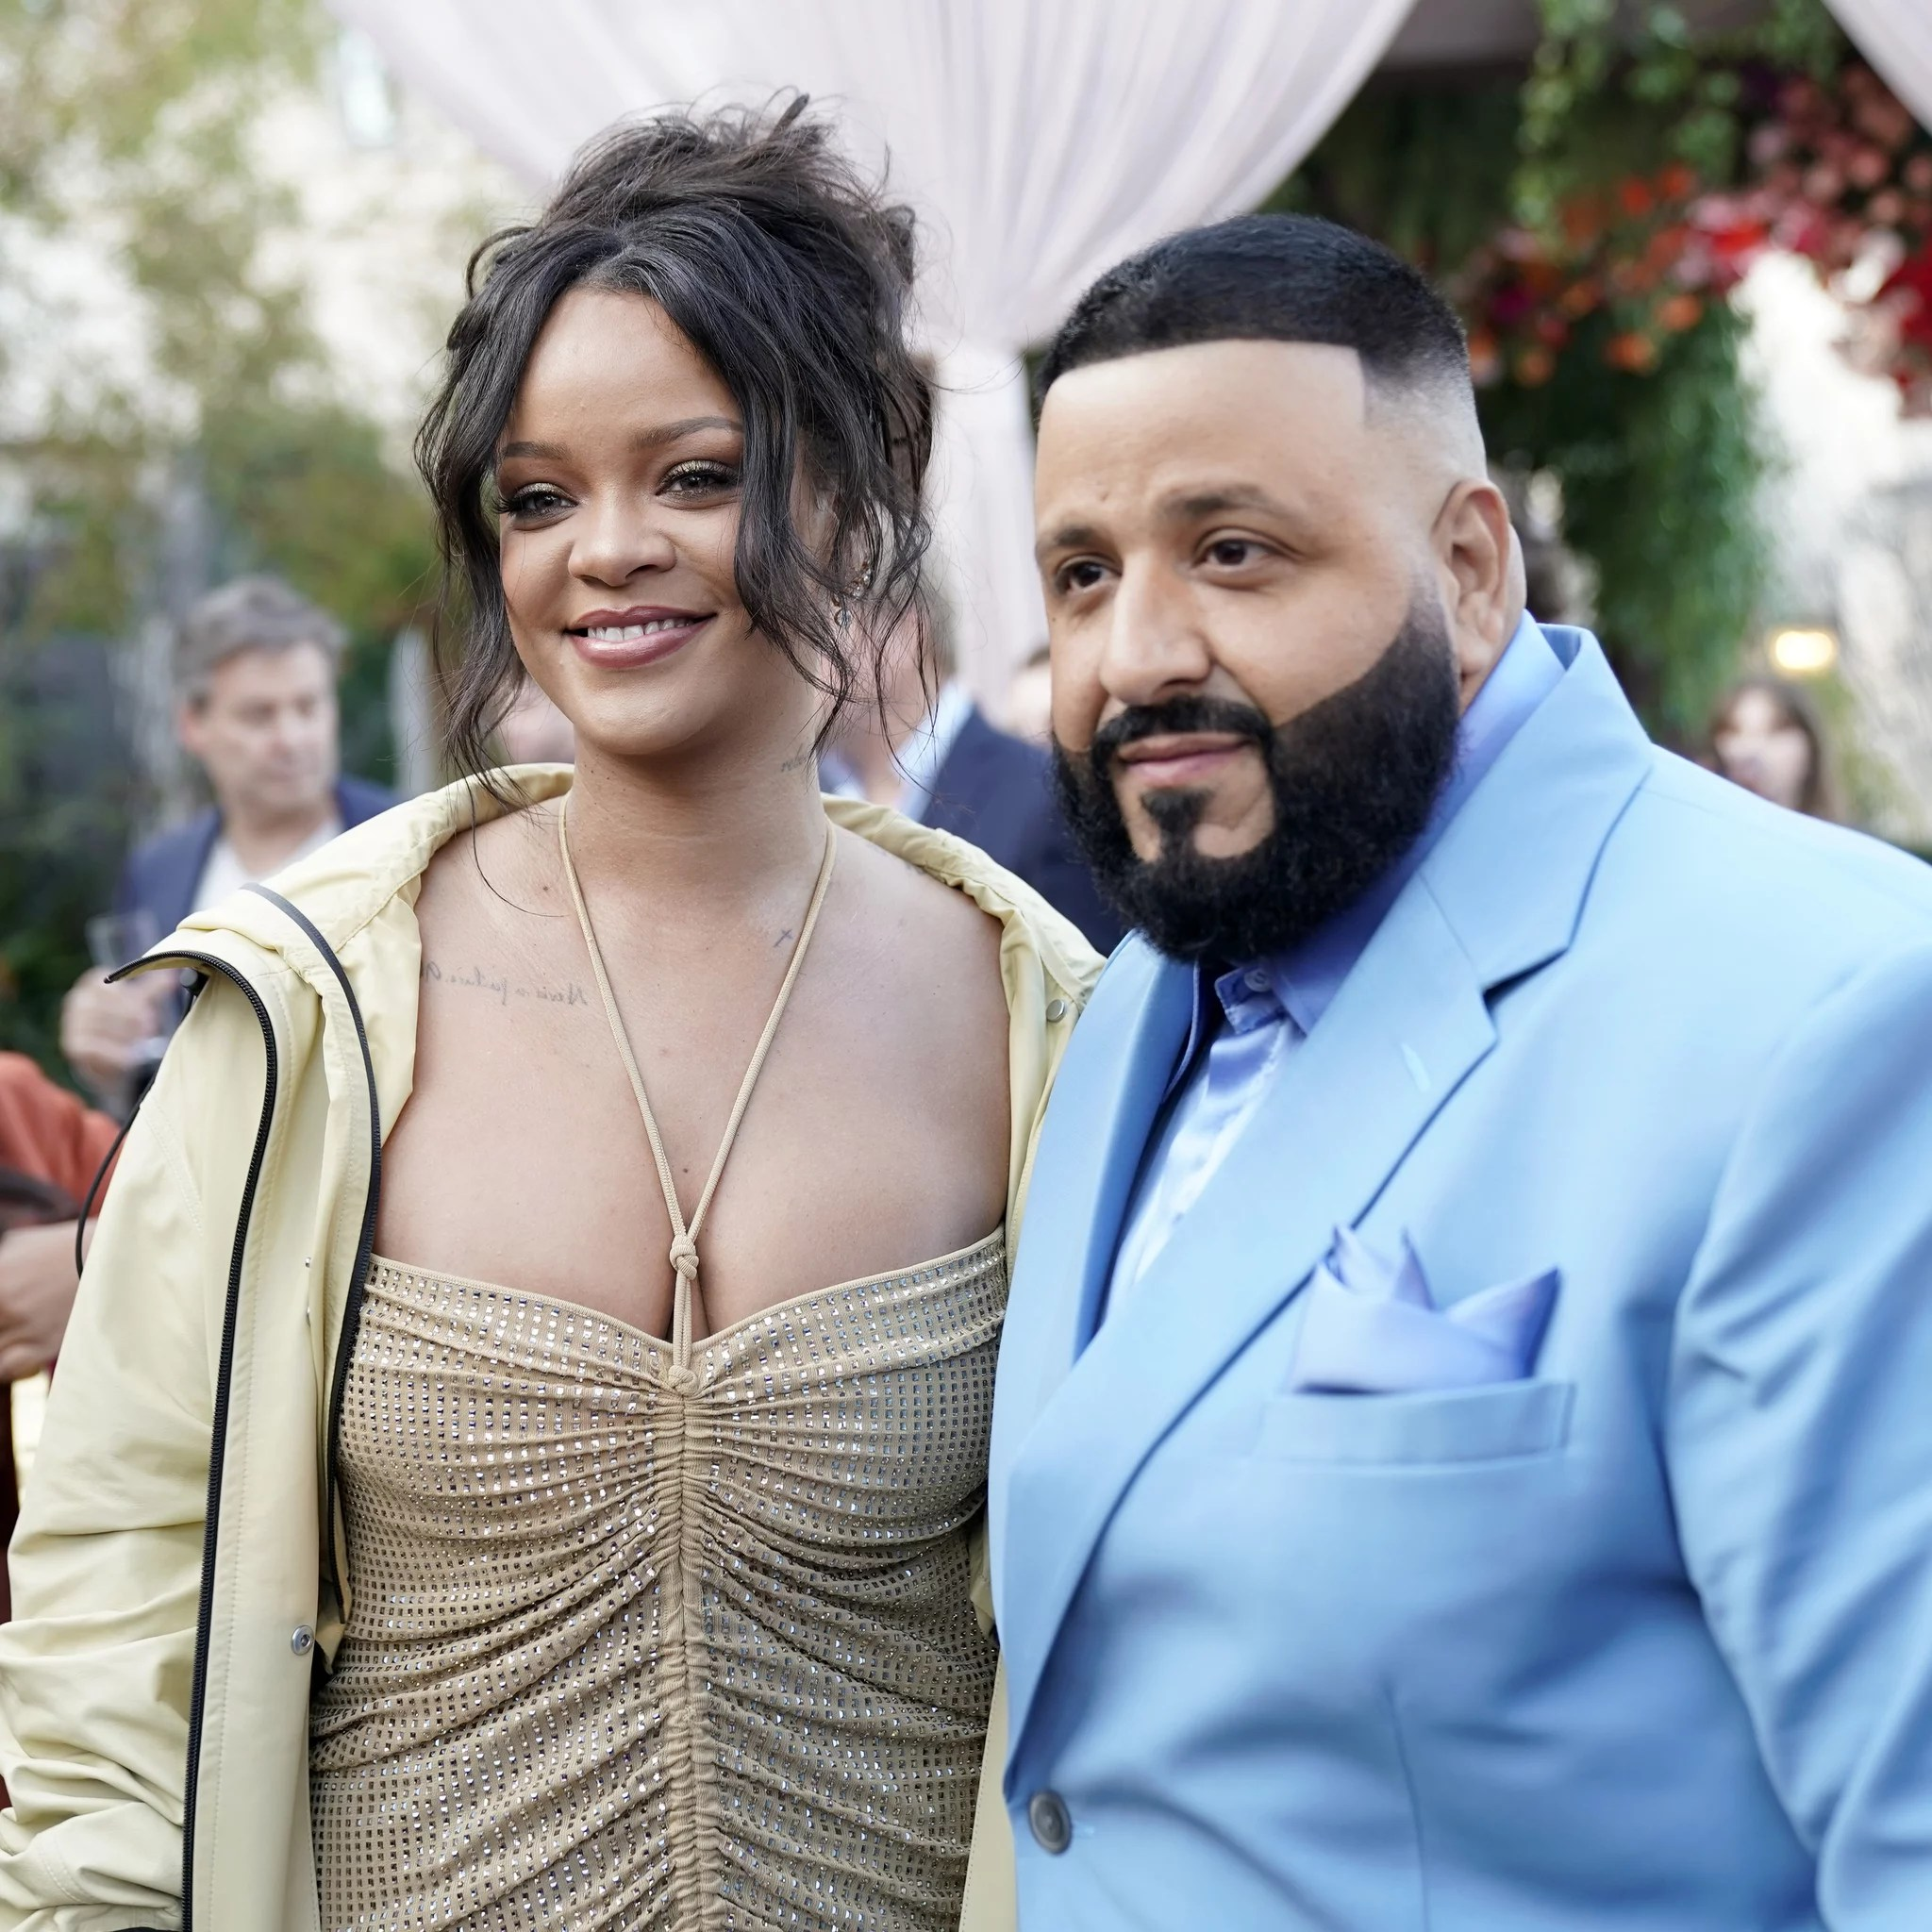 celebrities at the 2020 roc nation